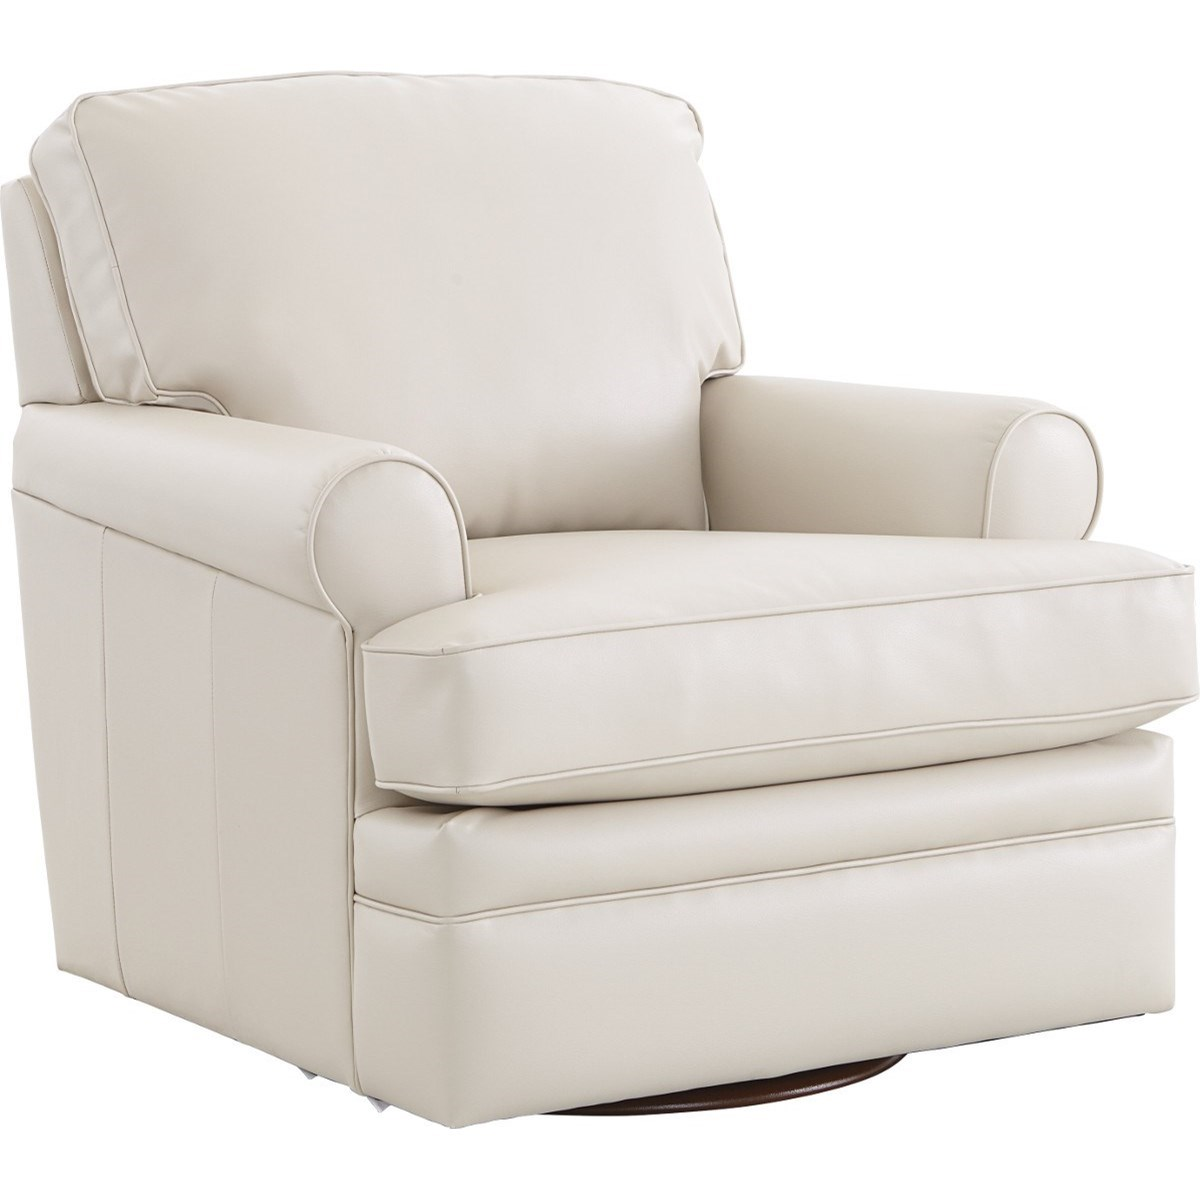 Chairs Premier Swivel Occasional Chair by La-Z-Boy at Jordan's Home Furnishings